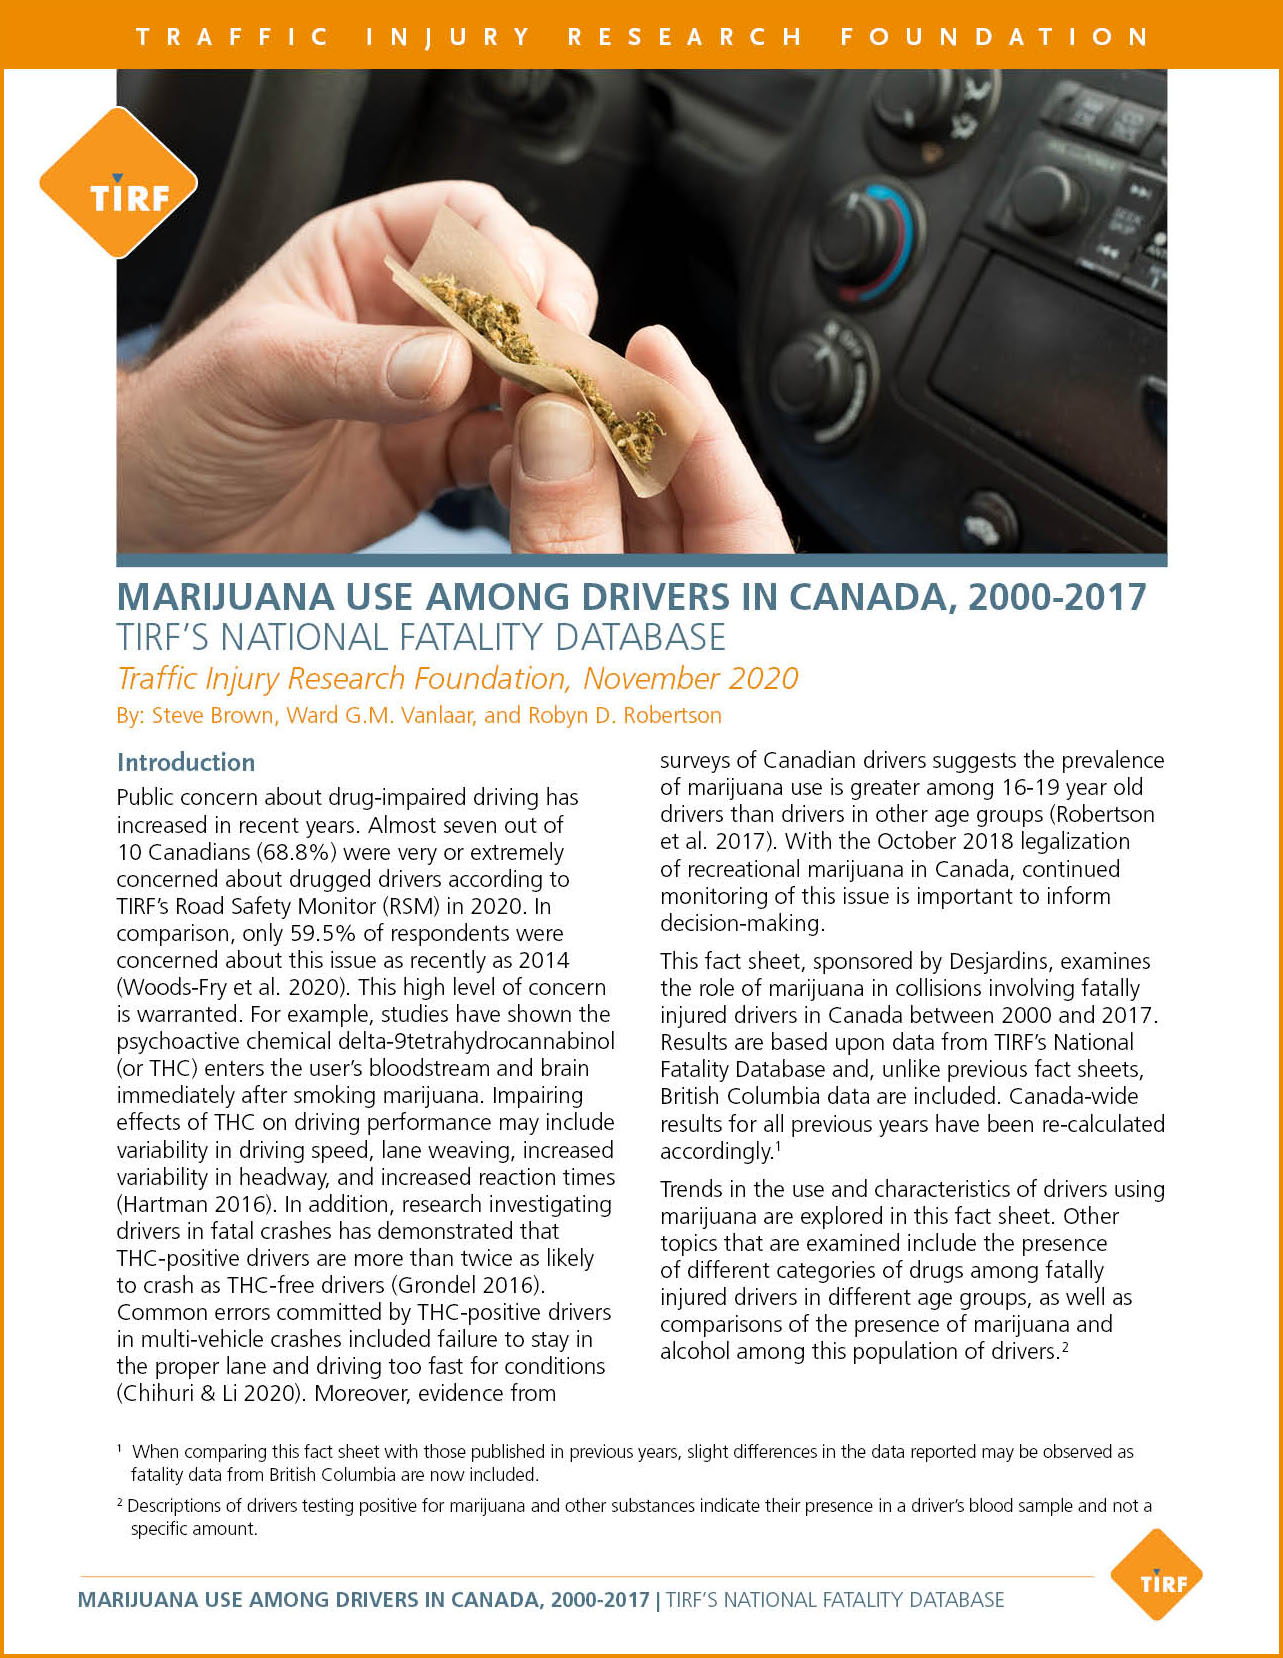 Marijuana Use Among Drivers in Canada, 2000-2017